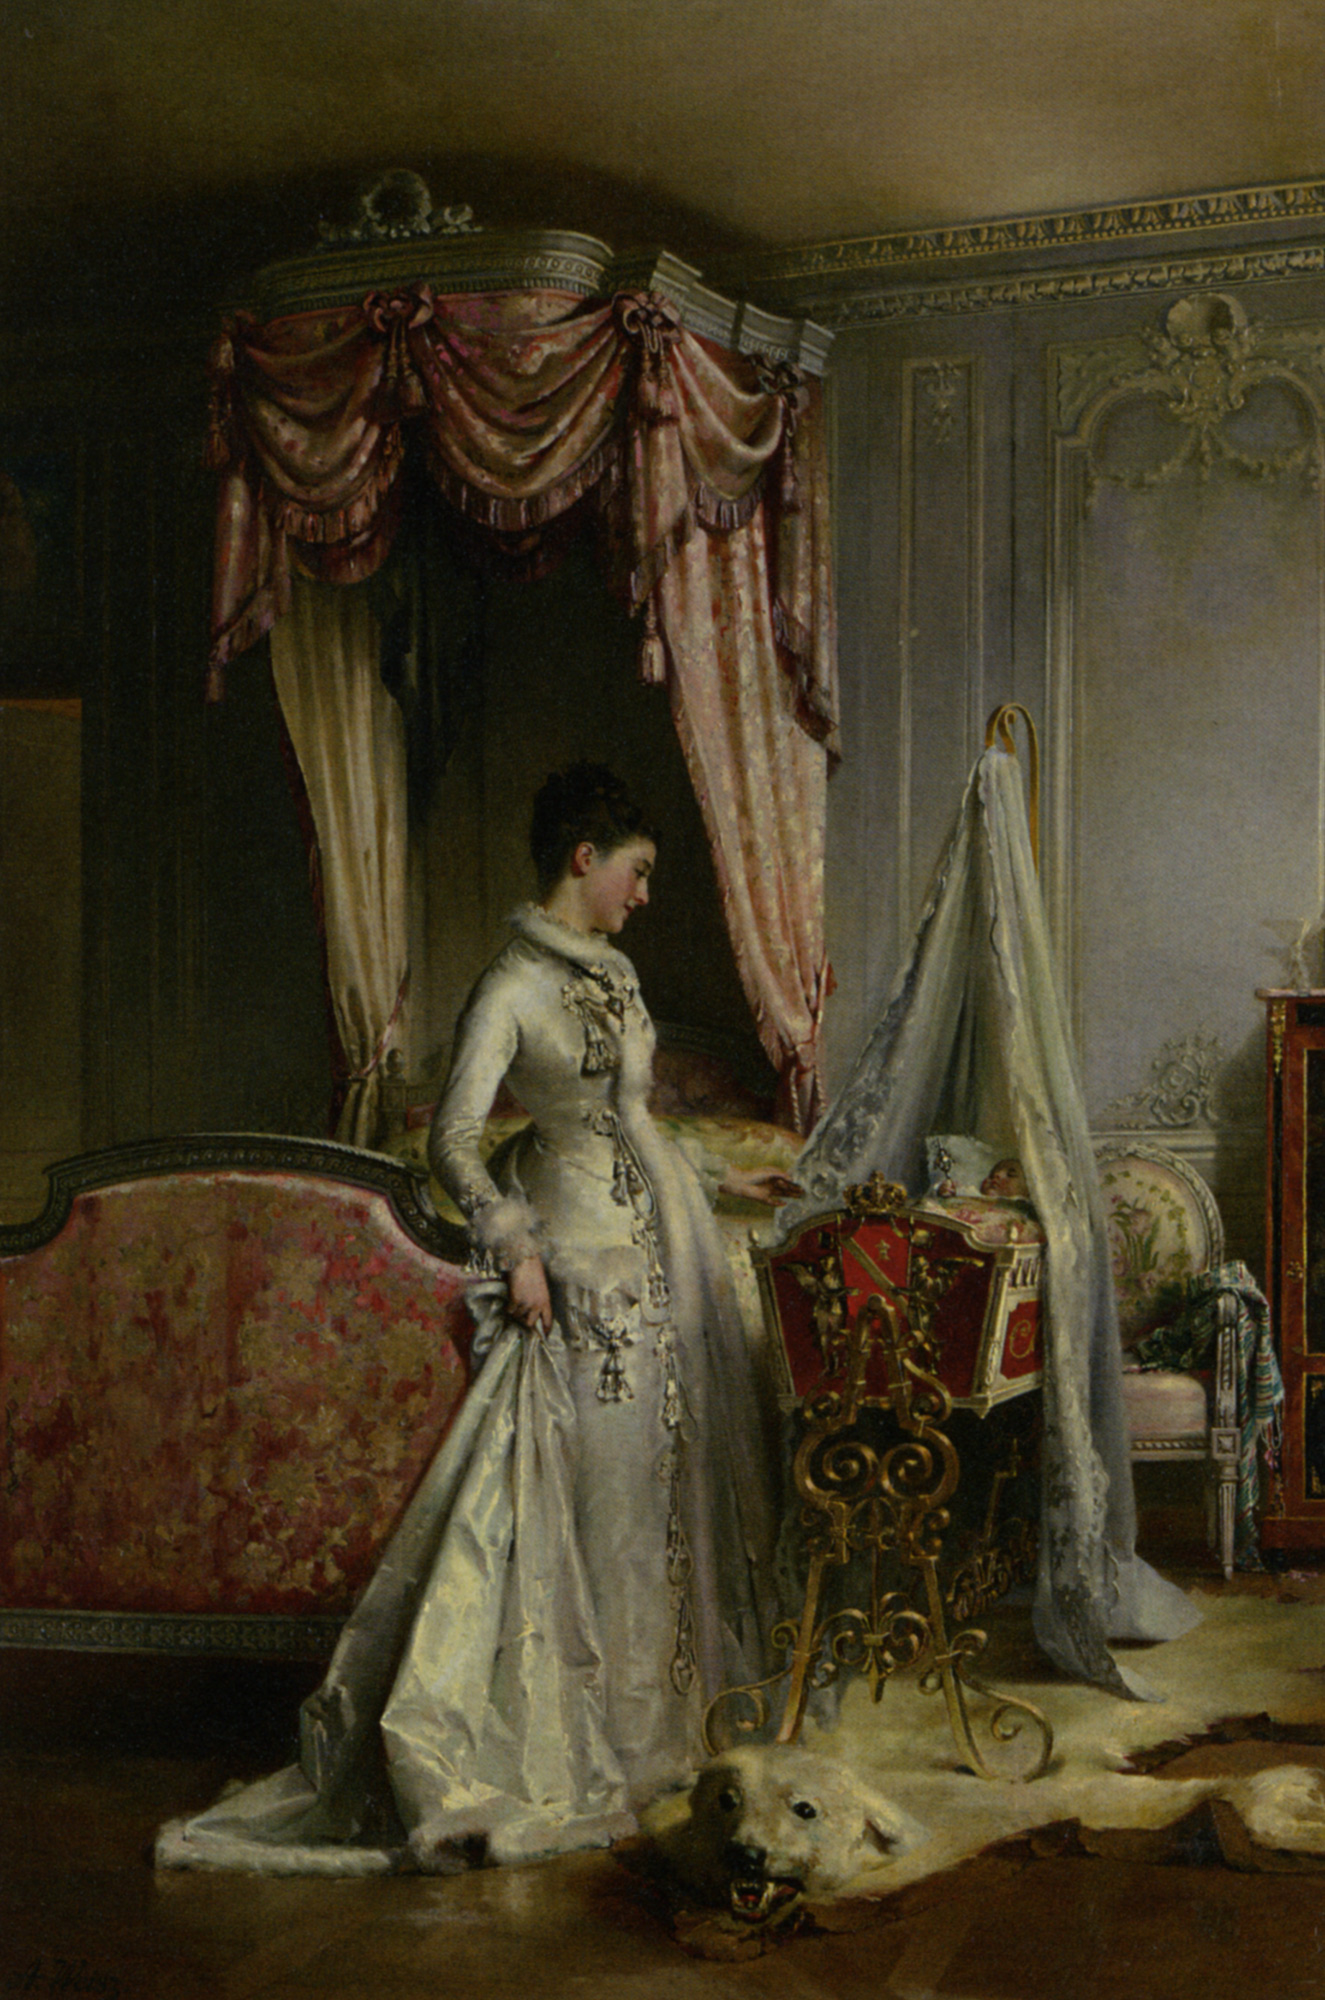 The Heir :: Adolphe Weisz  - Woman and child in painting and art ôîòî